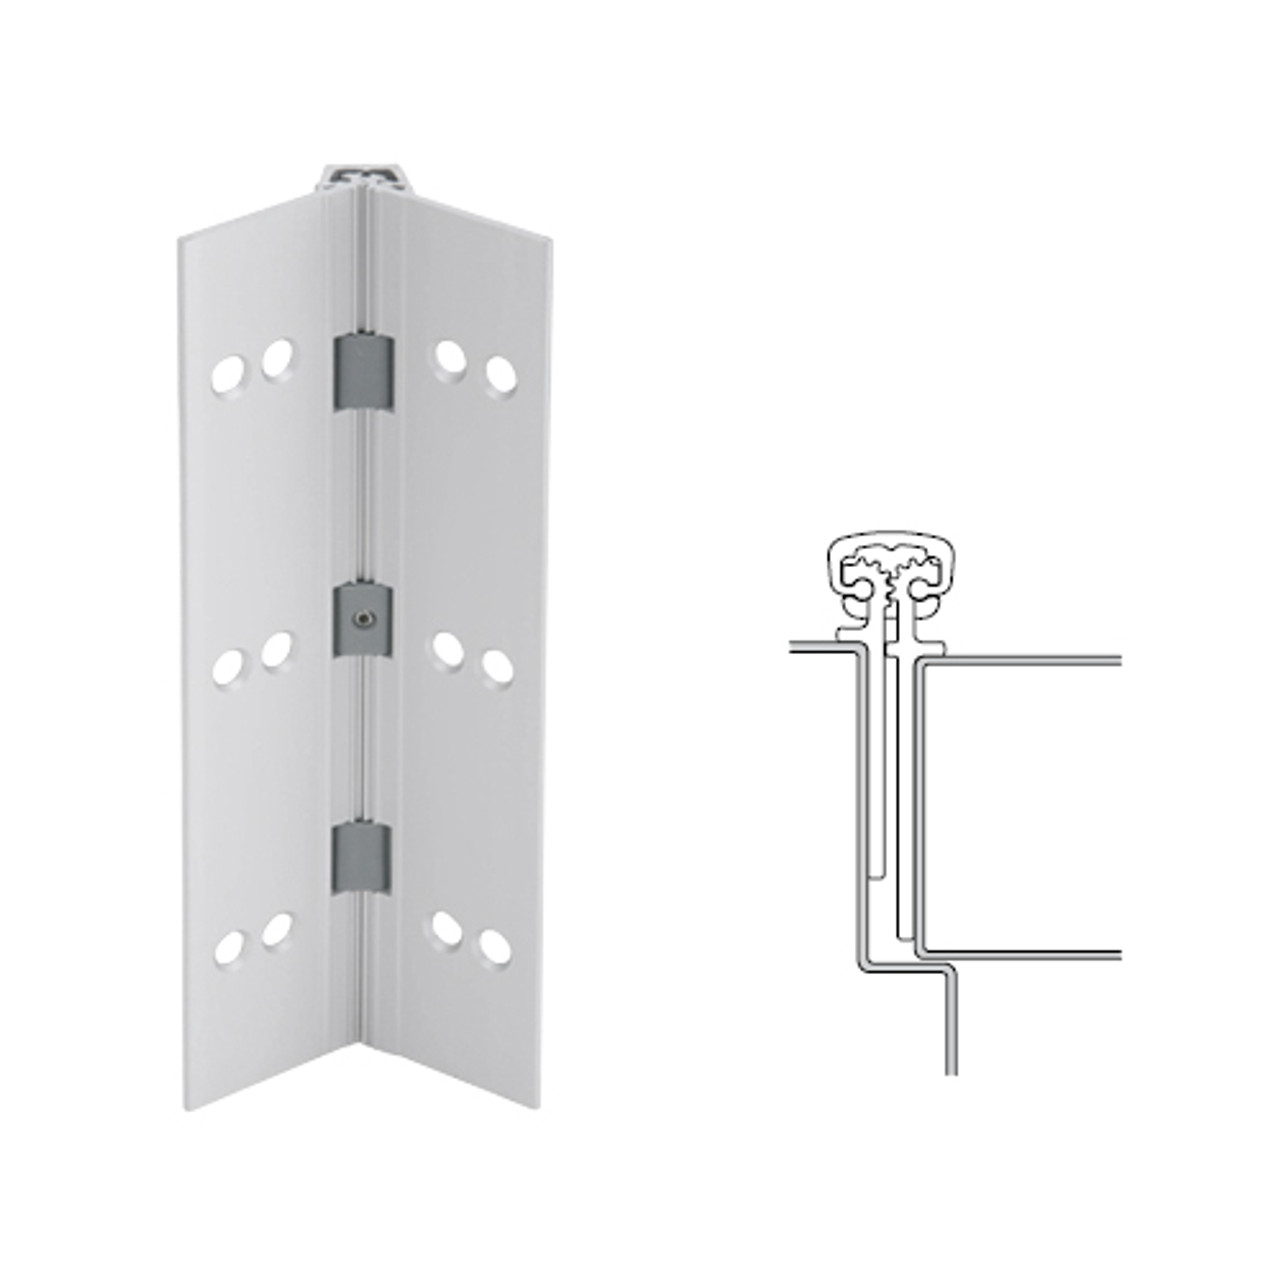 026XY-US28-85-SECHM IVES Full Mortise Continuous Geared Hinges with Security Screws - Hex Pin Drive in Satin Aluminum